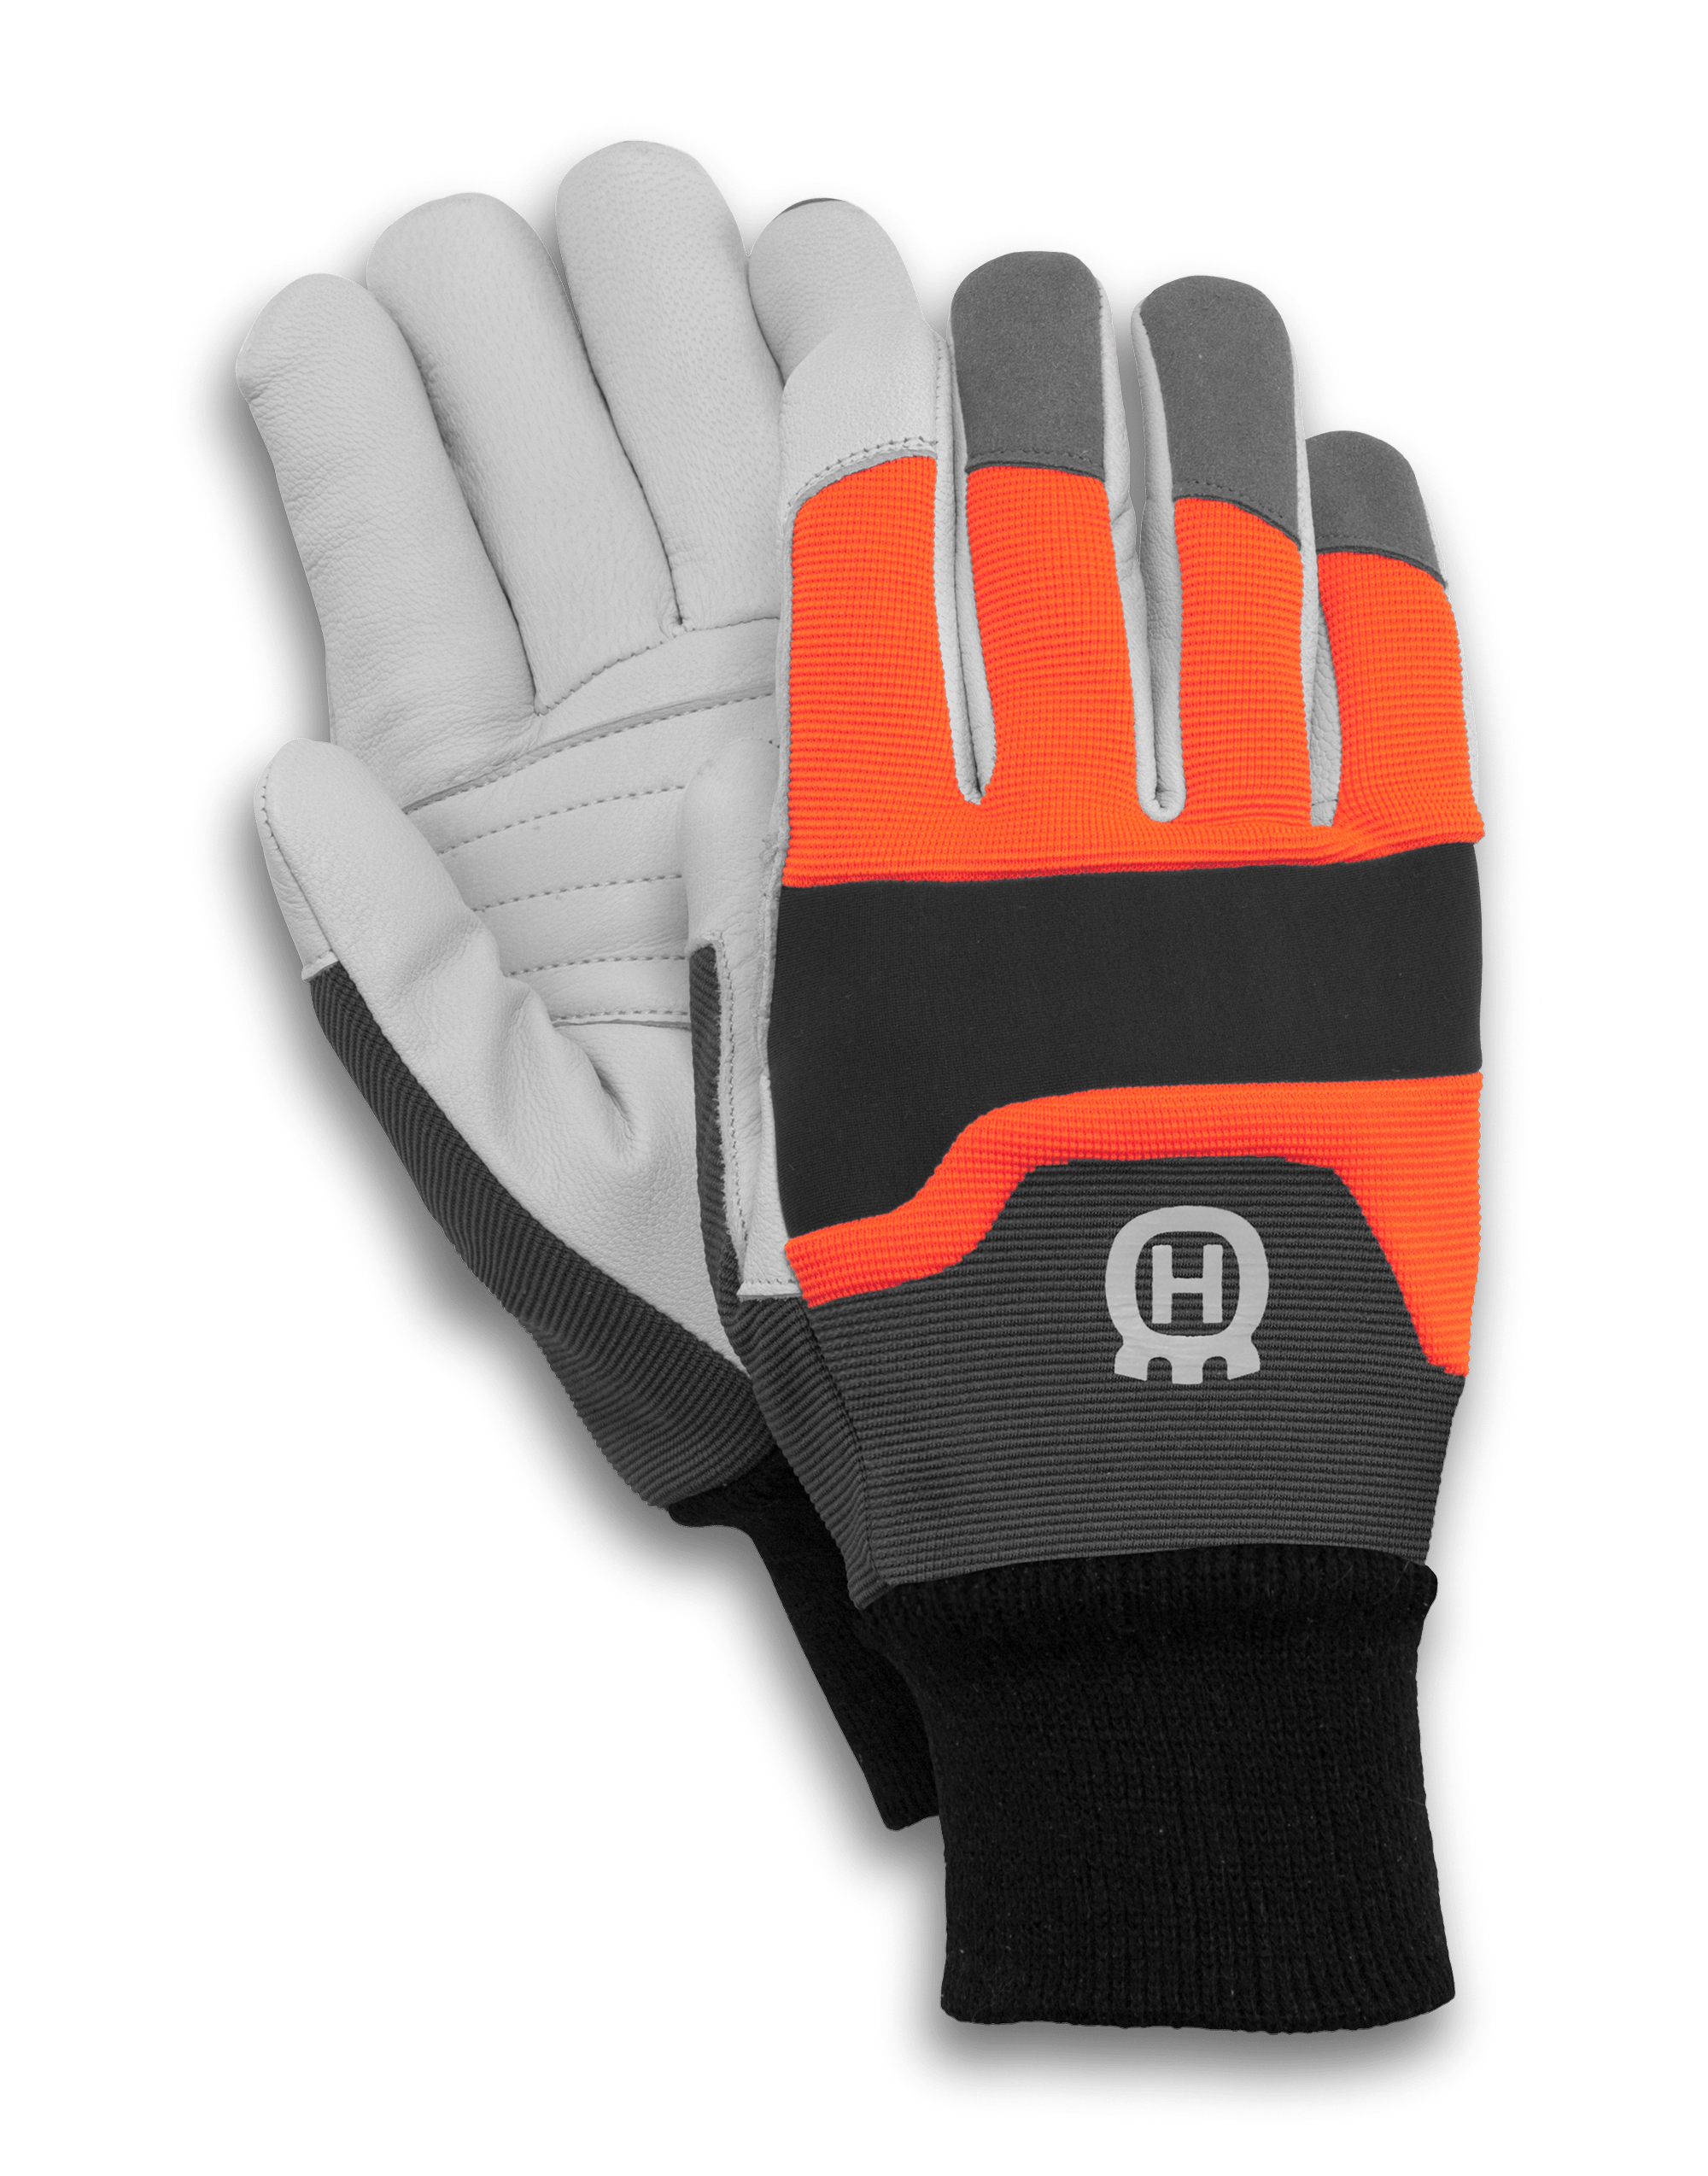 SIZE 09 HUSQVARNA FUNCTIONAL 16 GLOVES W// SAW PROTECTION